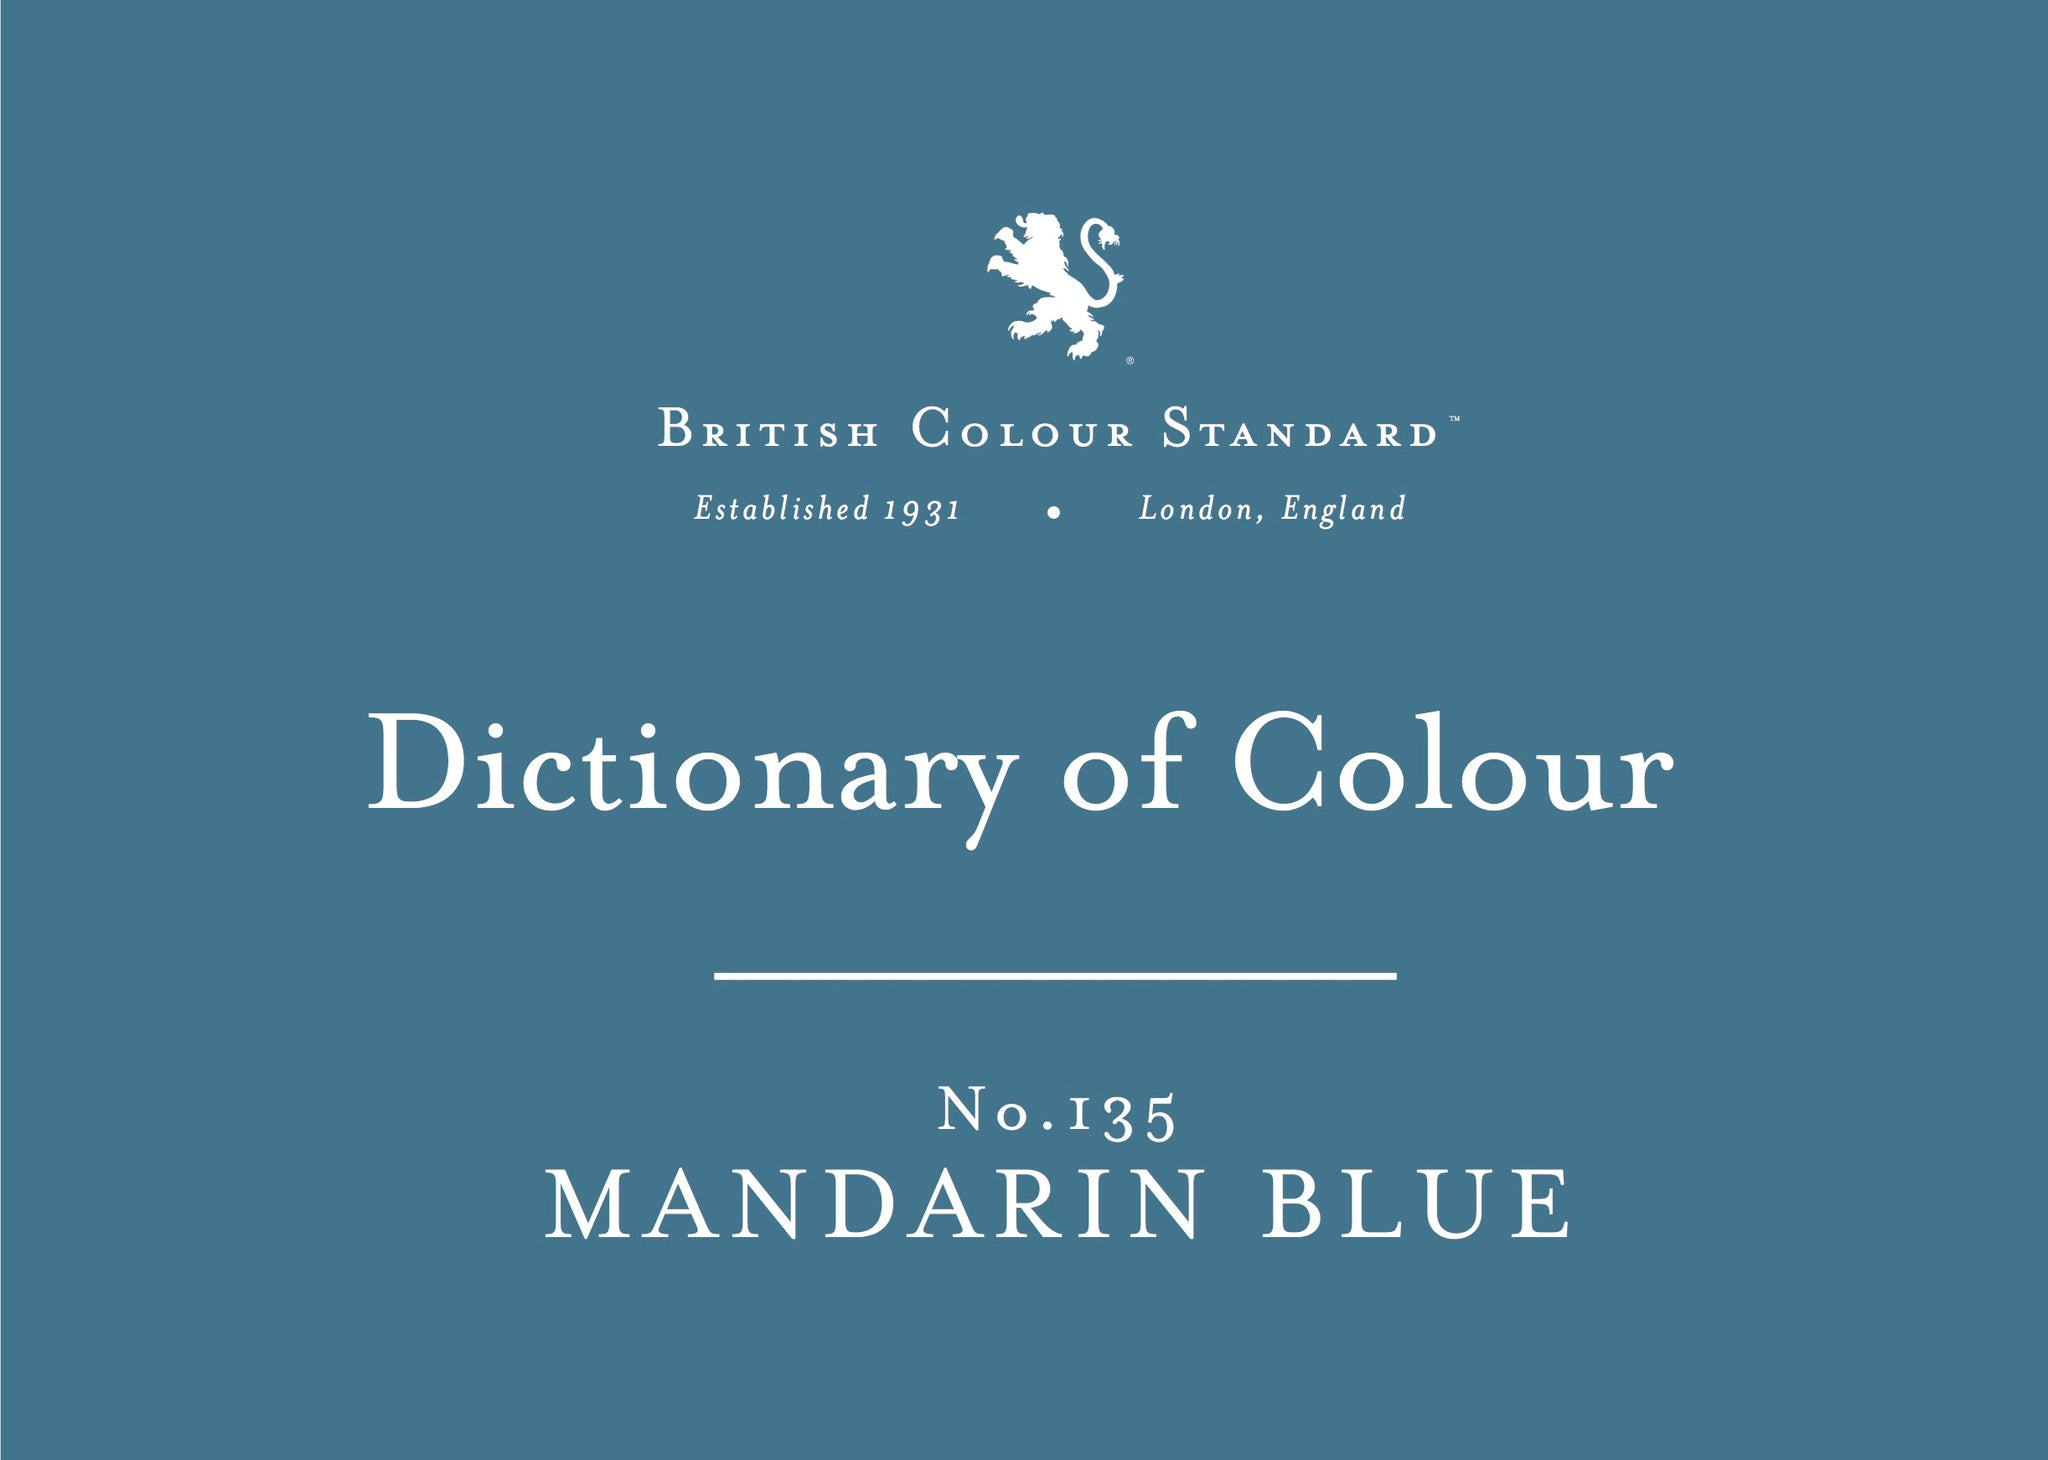 BRITISH COLOUR STANDARD - Mandarin Blue No. 135